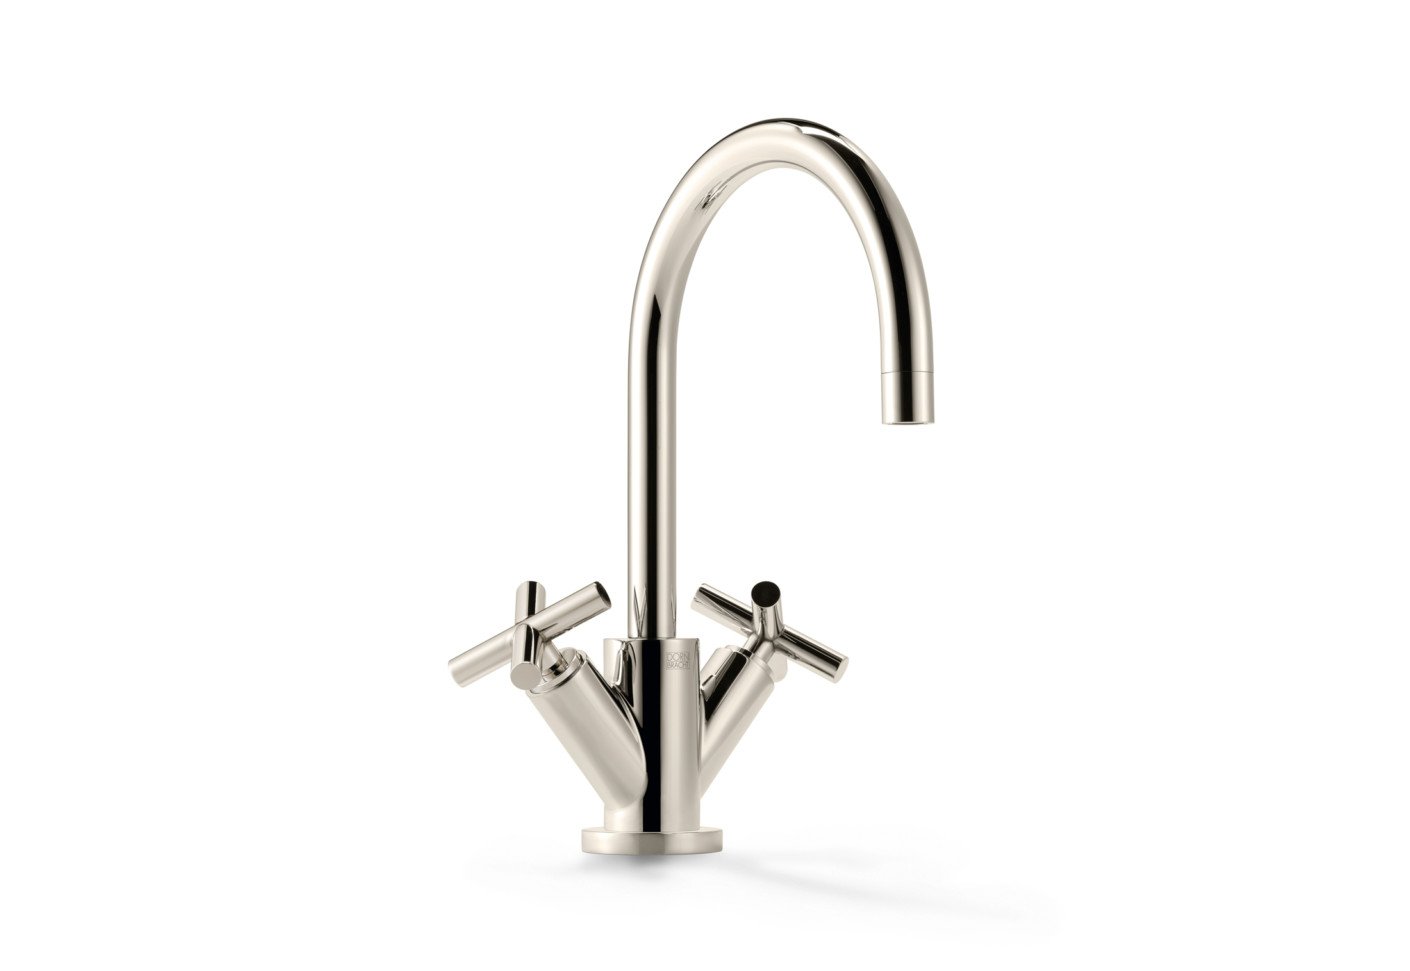 Tara platinum single-hole basin mixer by Dornbracht | STYLEPARK